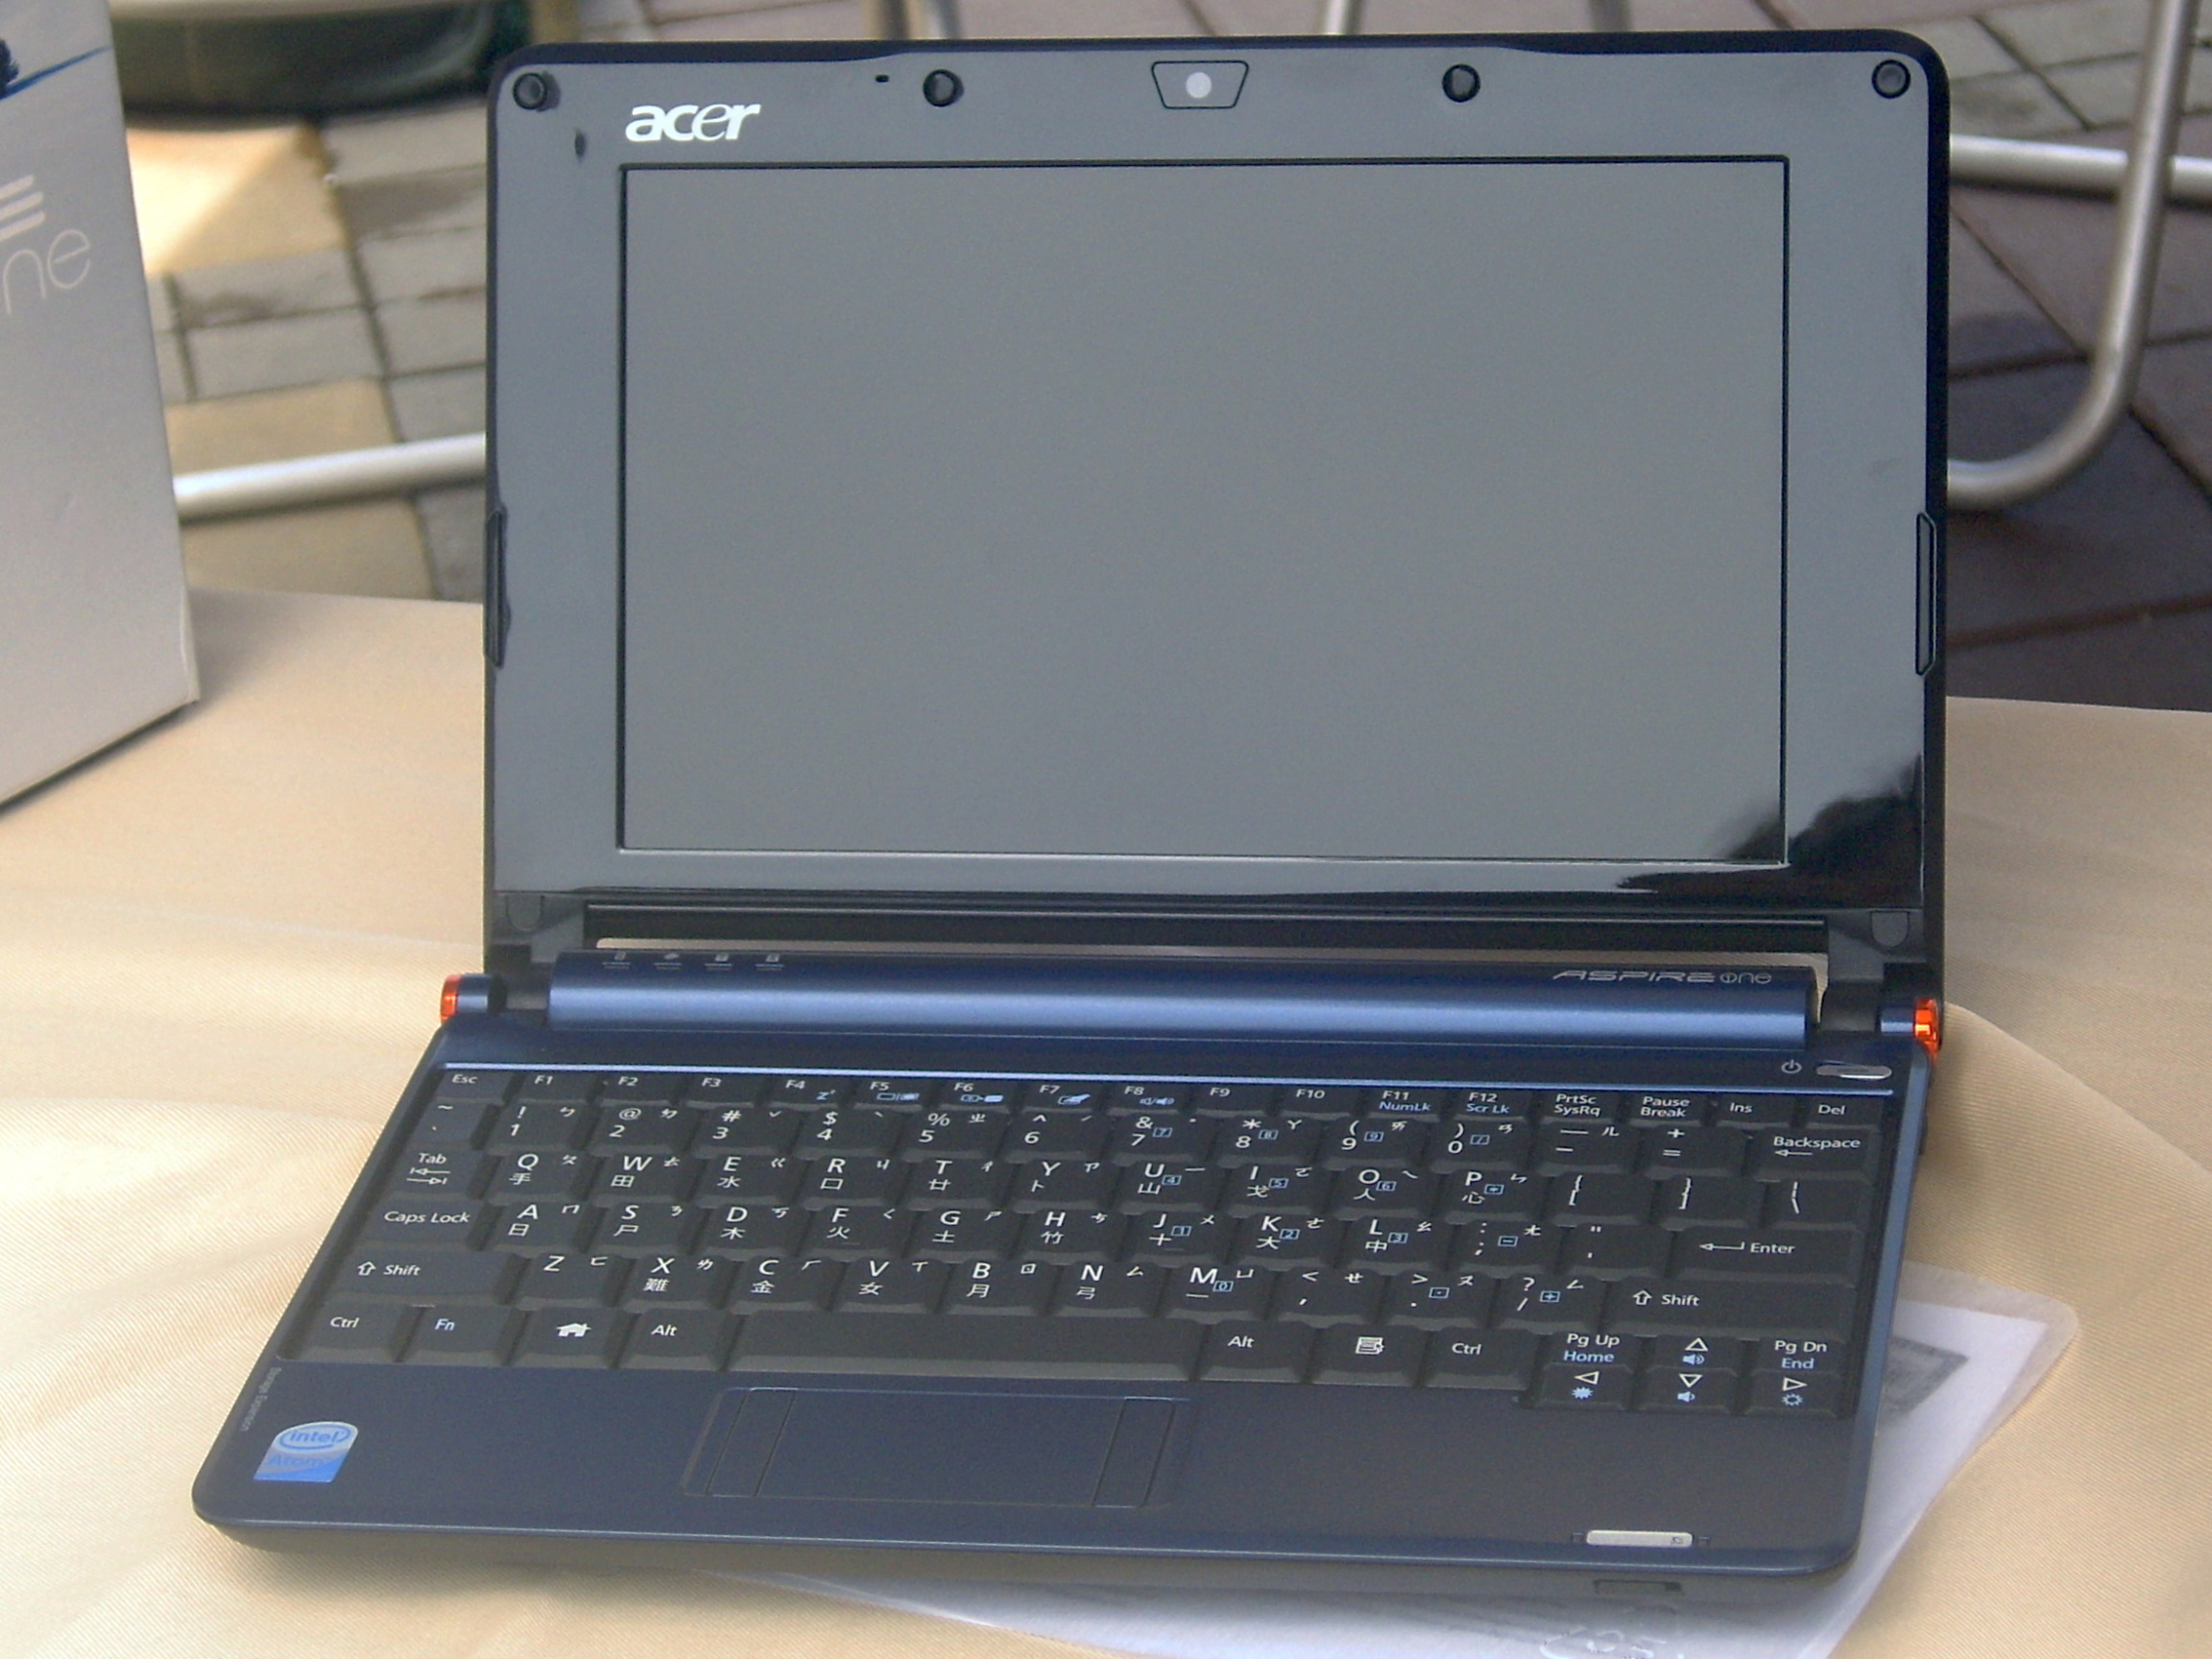 Acer Aspire 0ne Drivers for Windows XP